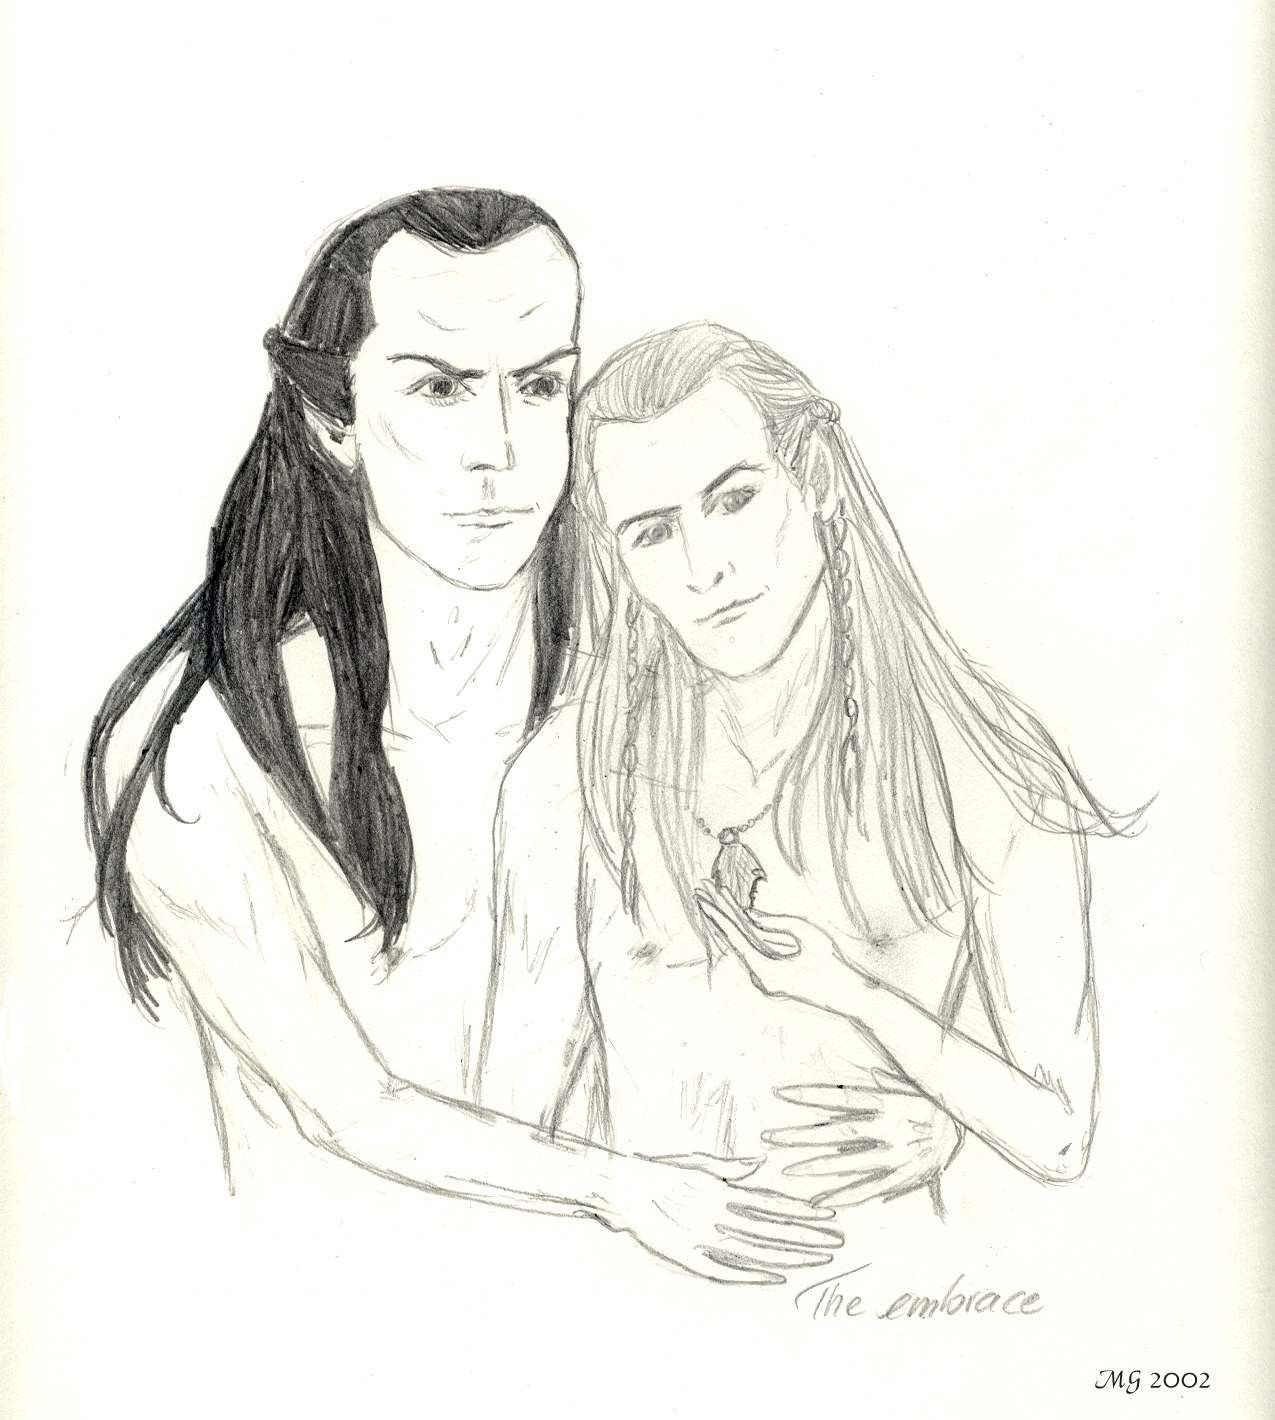 The Embrace, Legolas and Elrond